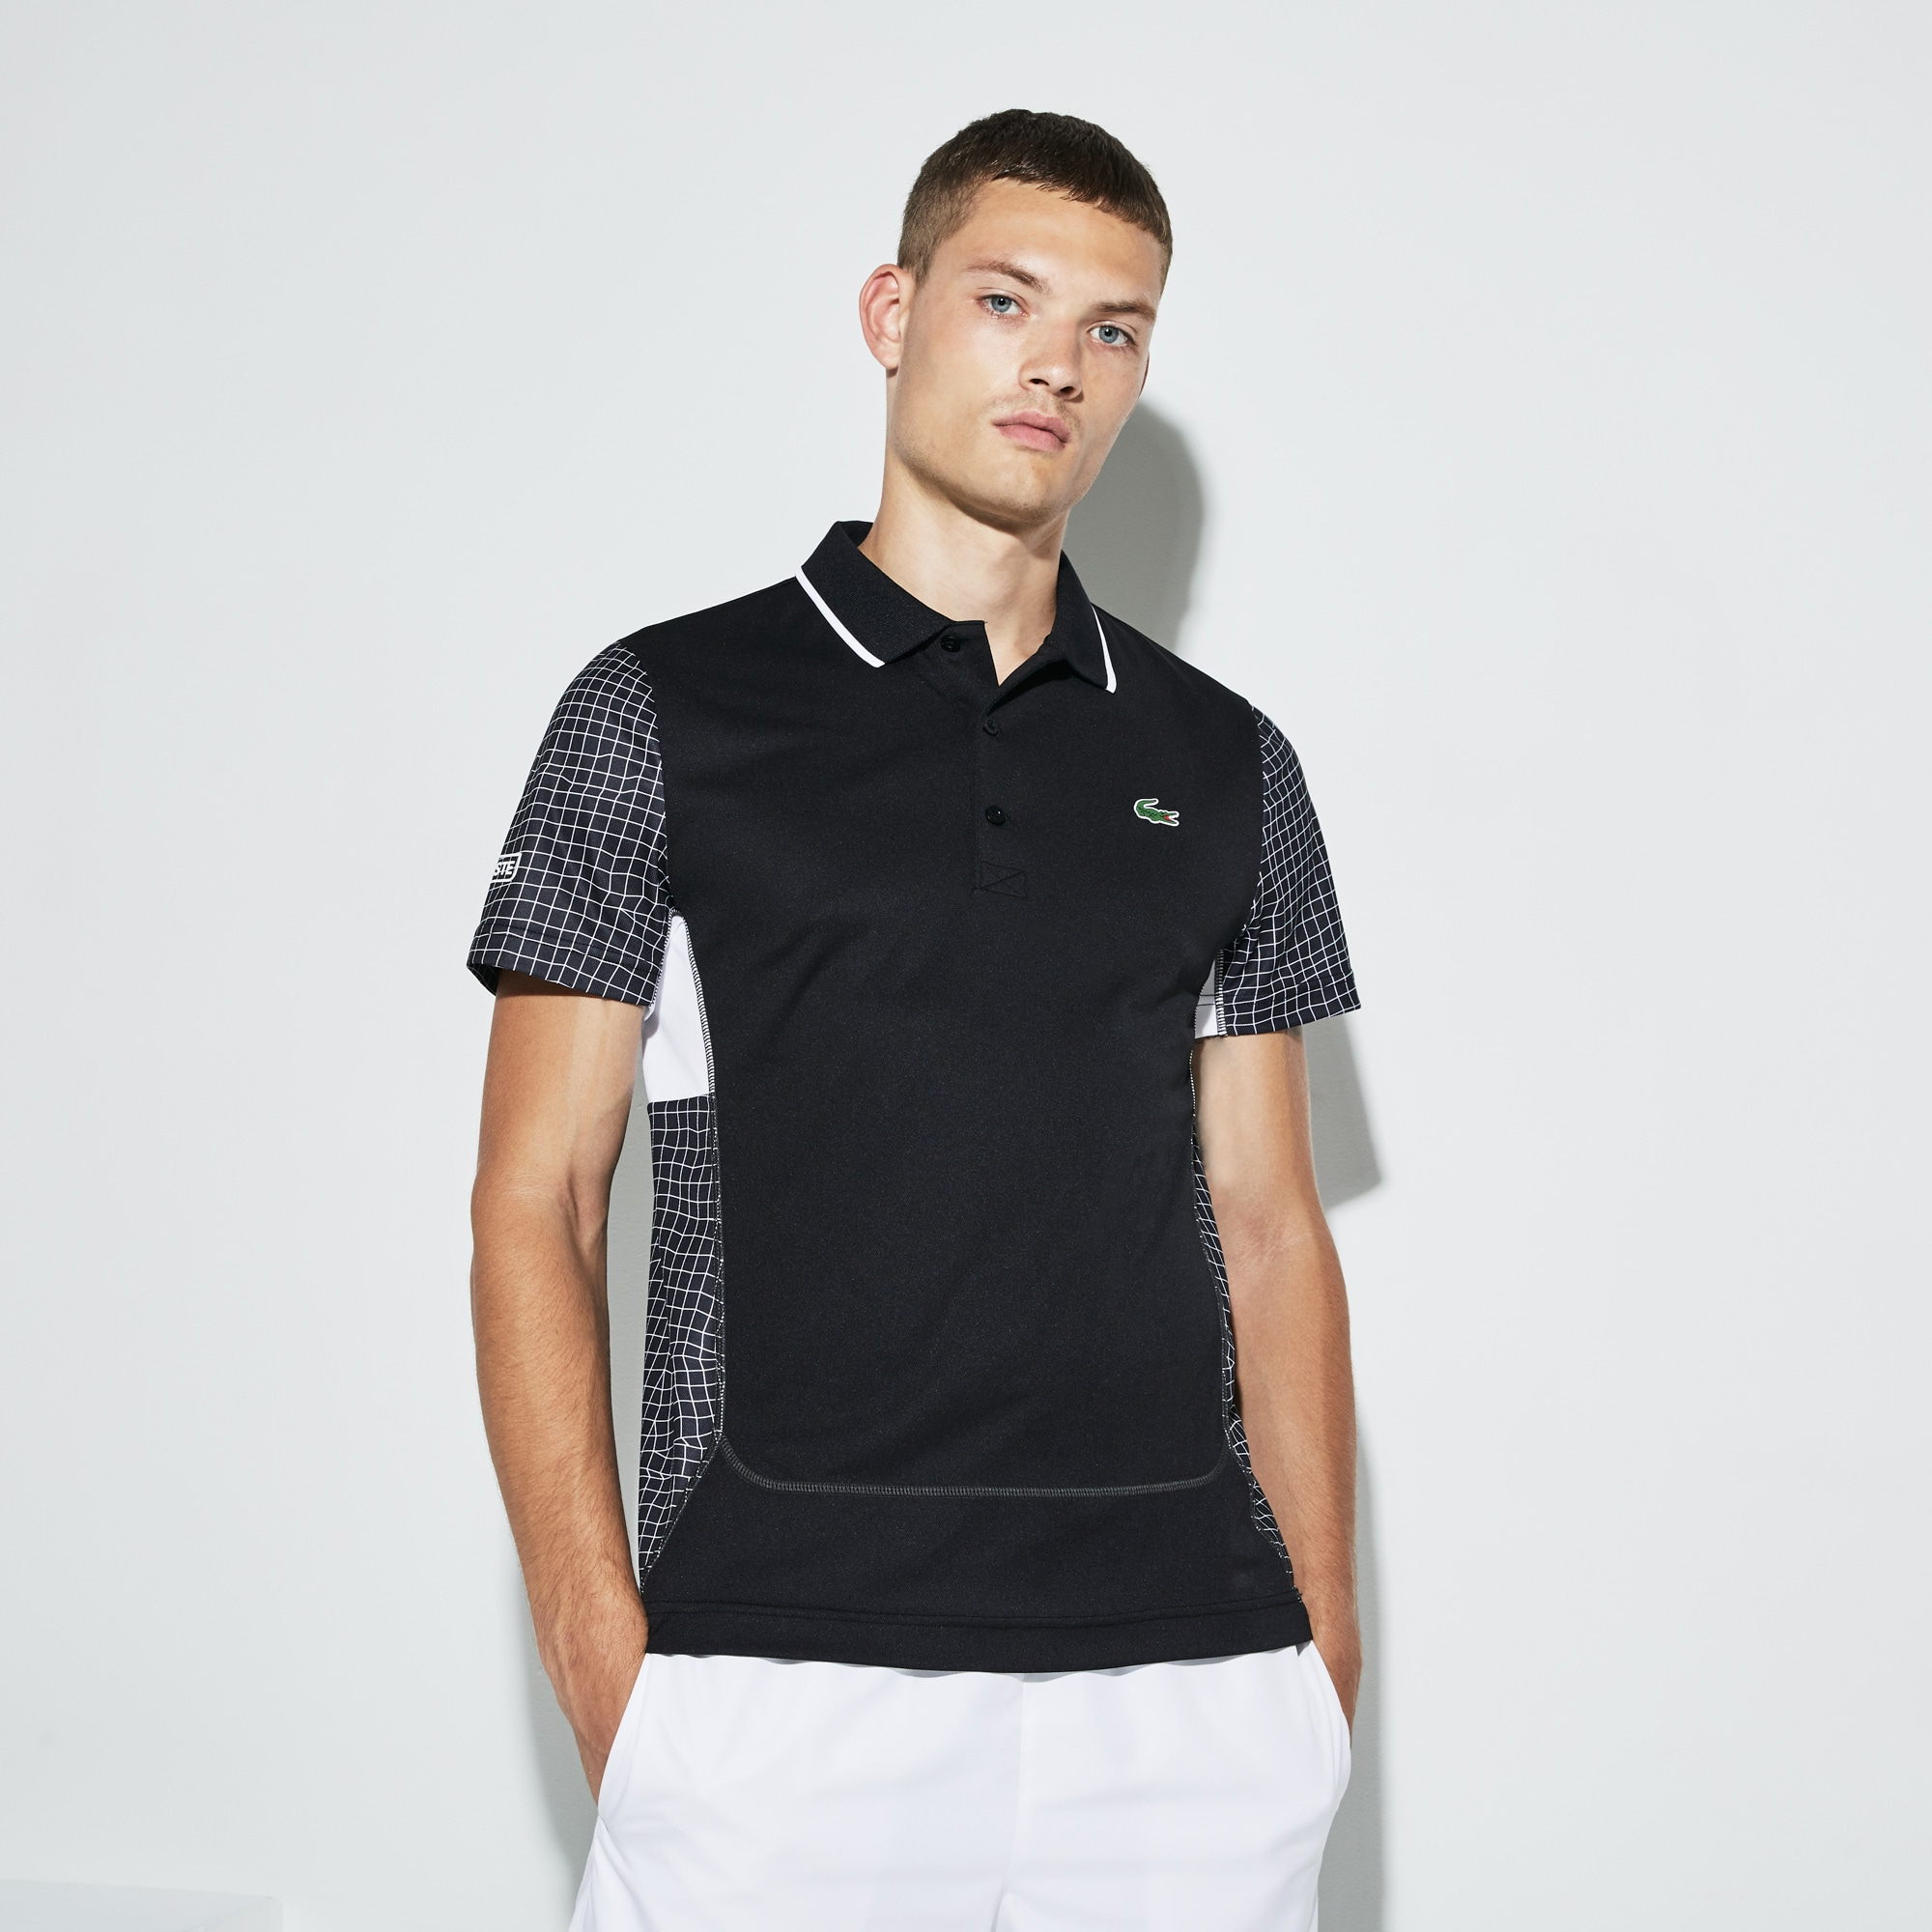 Men's SPORT Net Print Piqué Tennis Polo